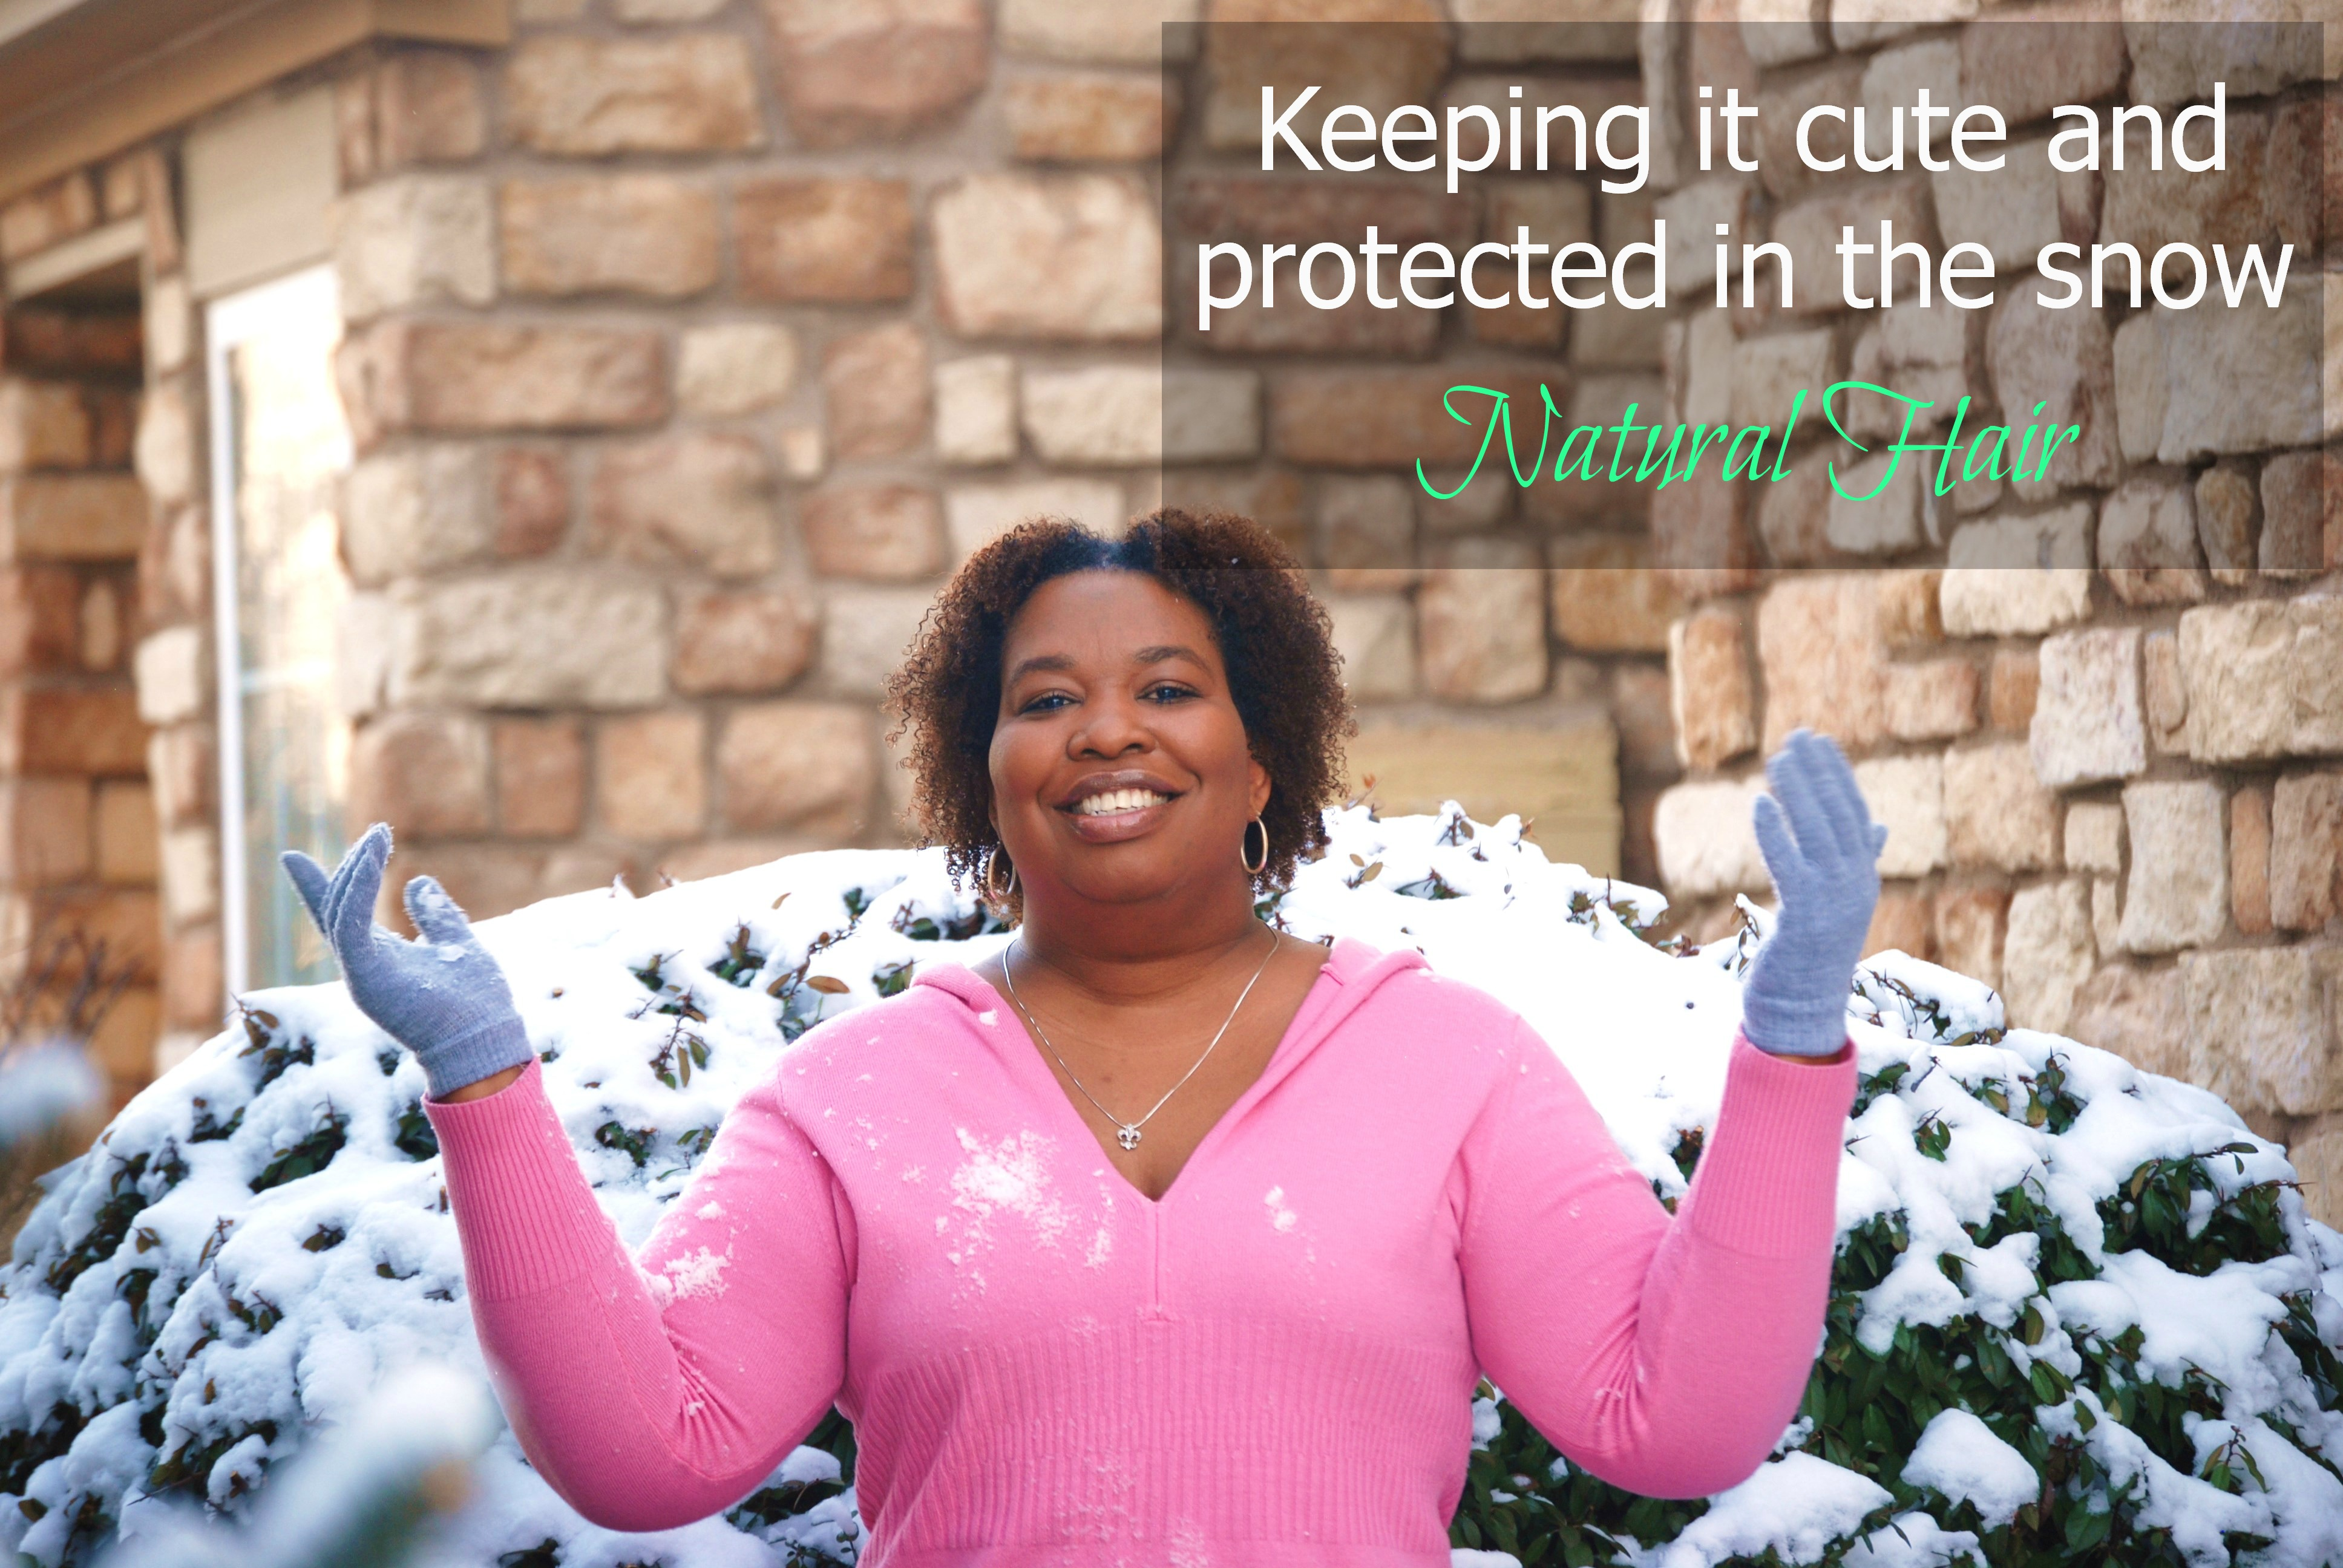 c9a9ceb200c25 3 Ways To Help You Keep It Cute and Protected this Winter